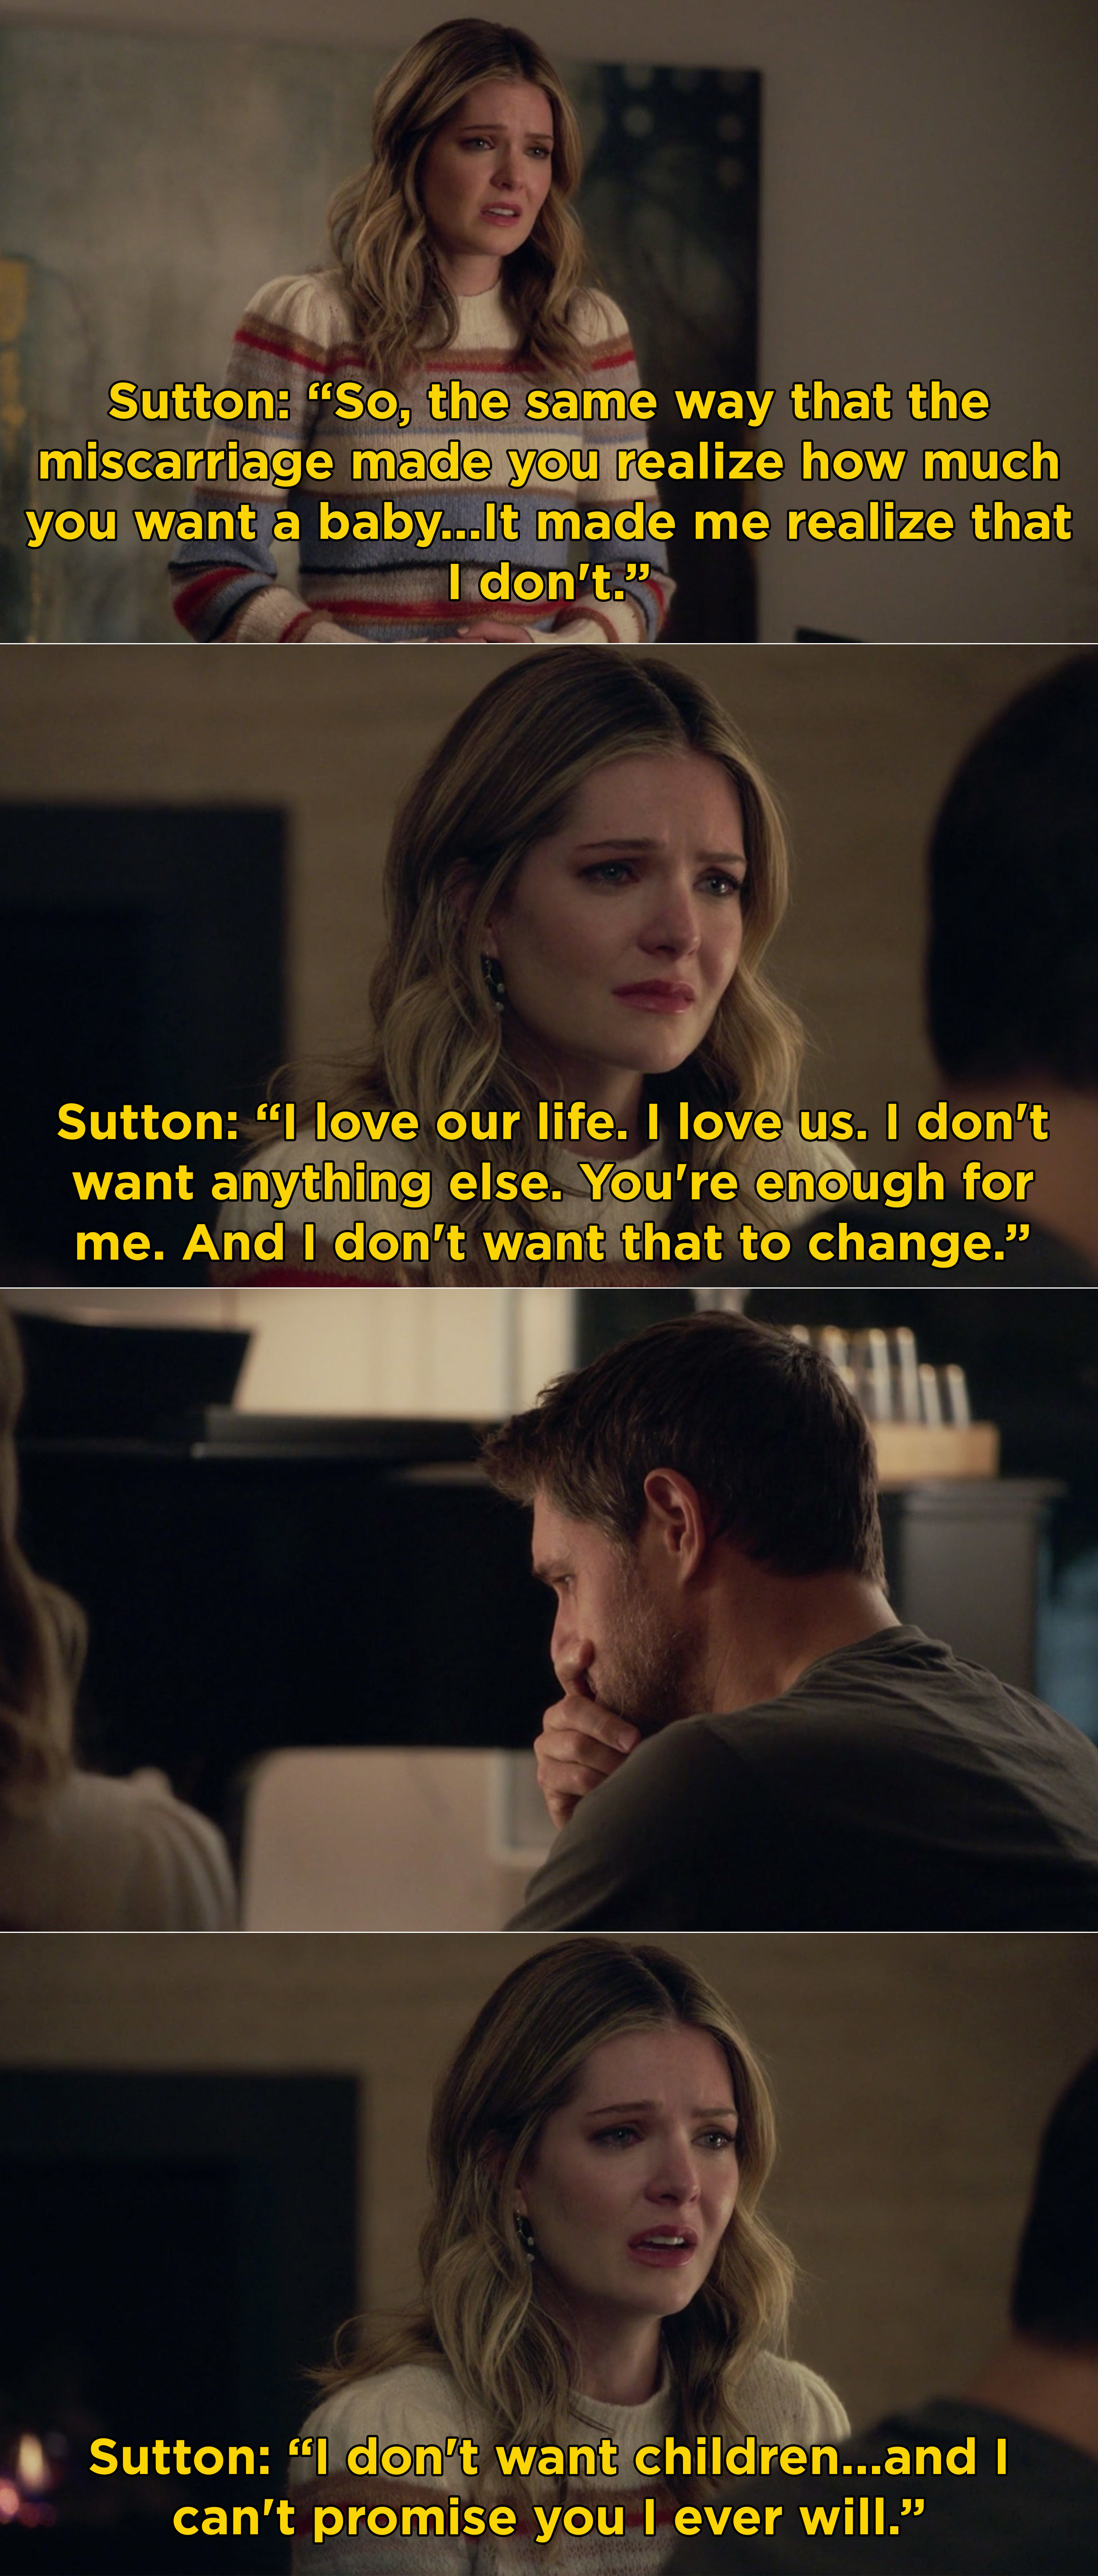 Sutton telling Richard that her miscarriage made her realize that she doesn't want children